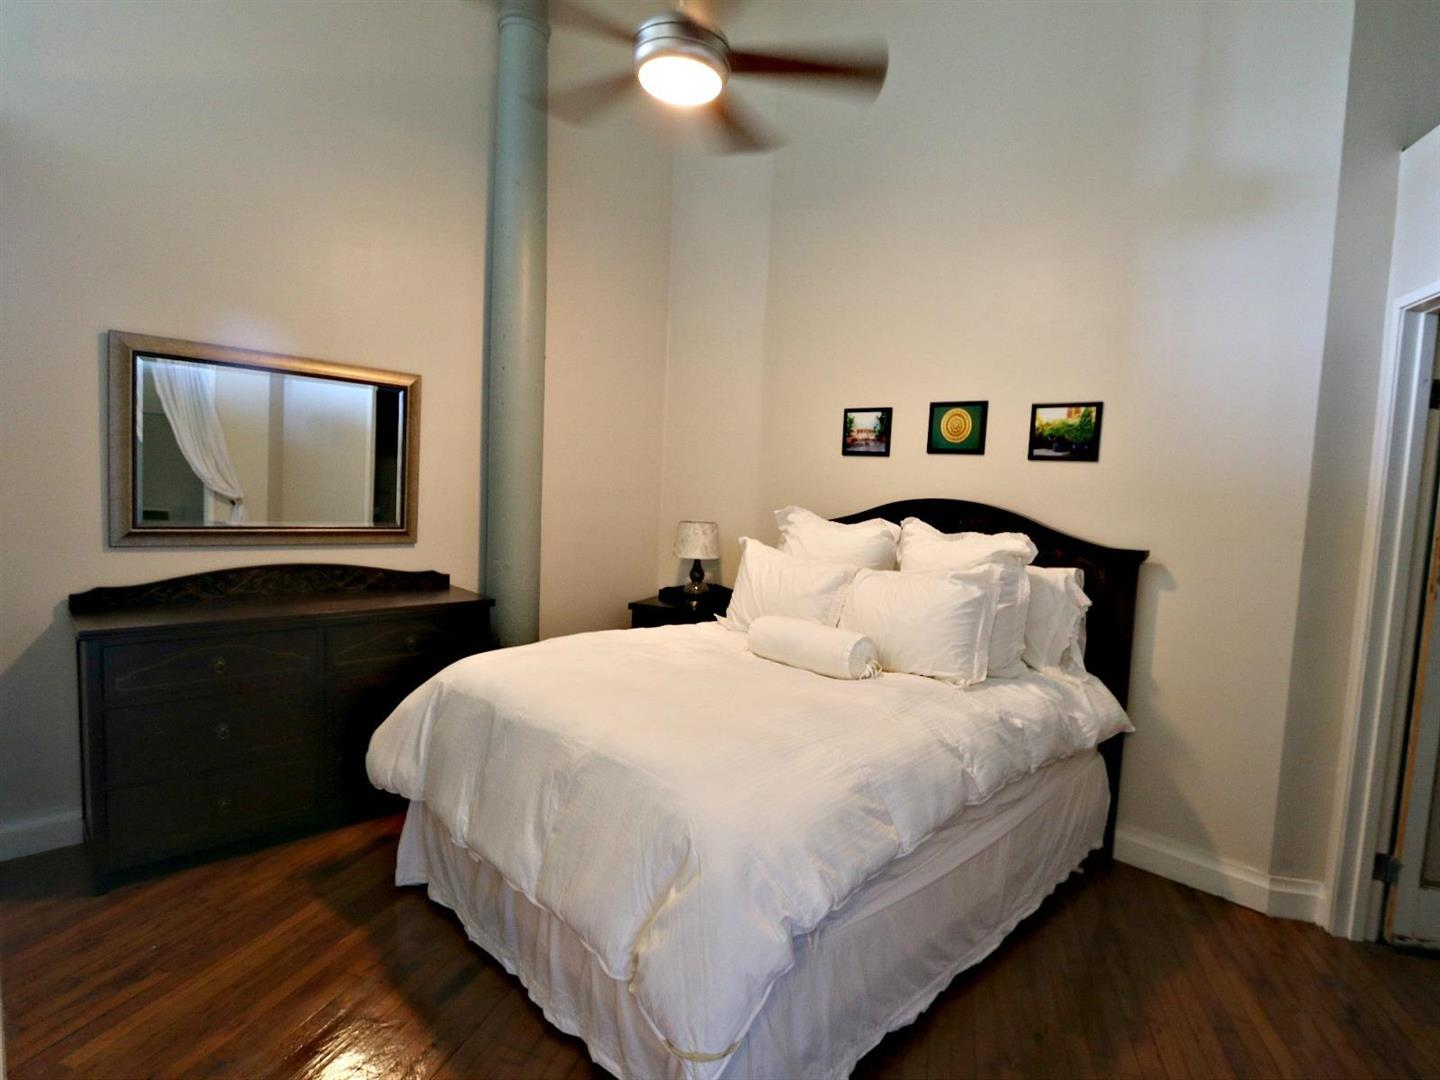 287CottonMillCondos,Bedroom.jpg